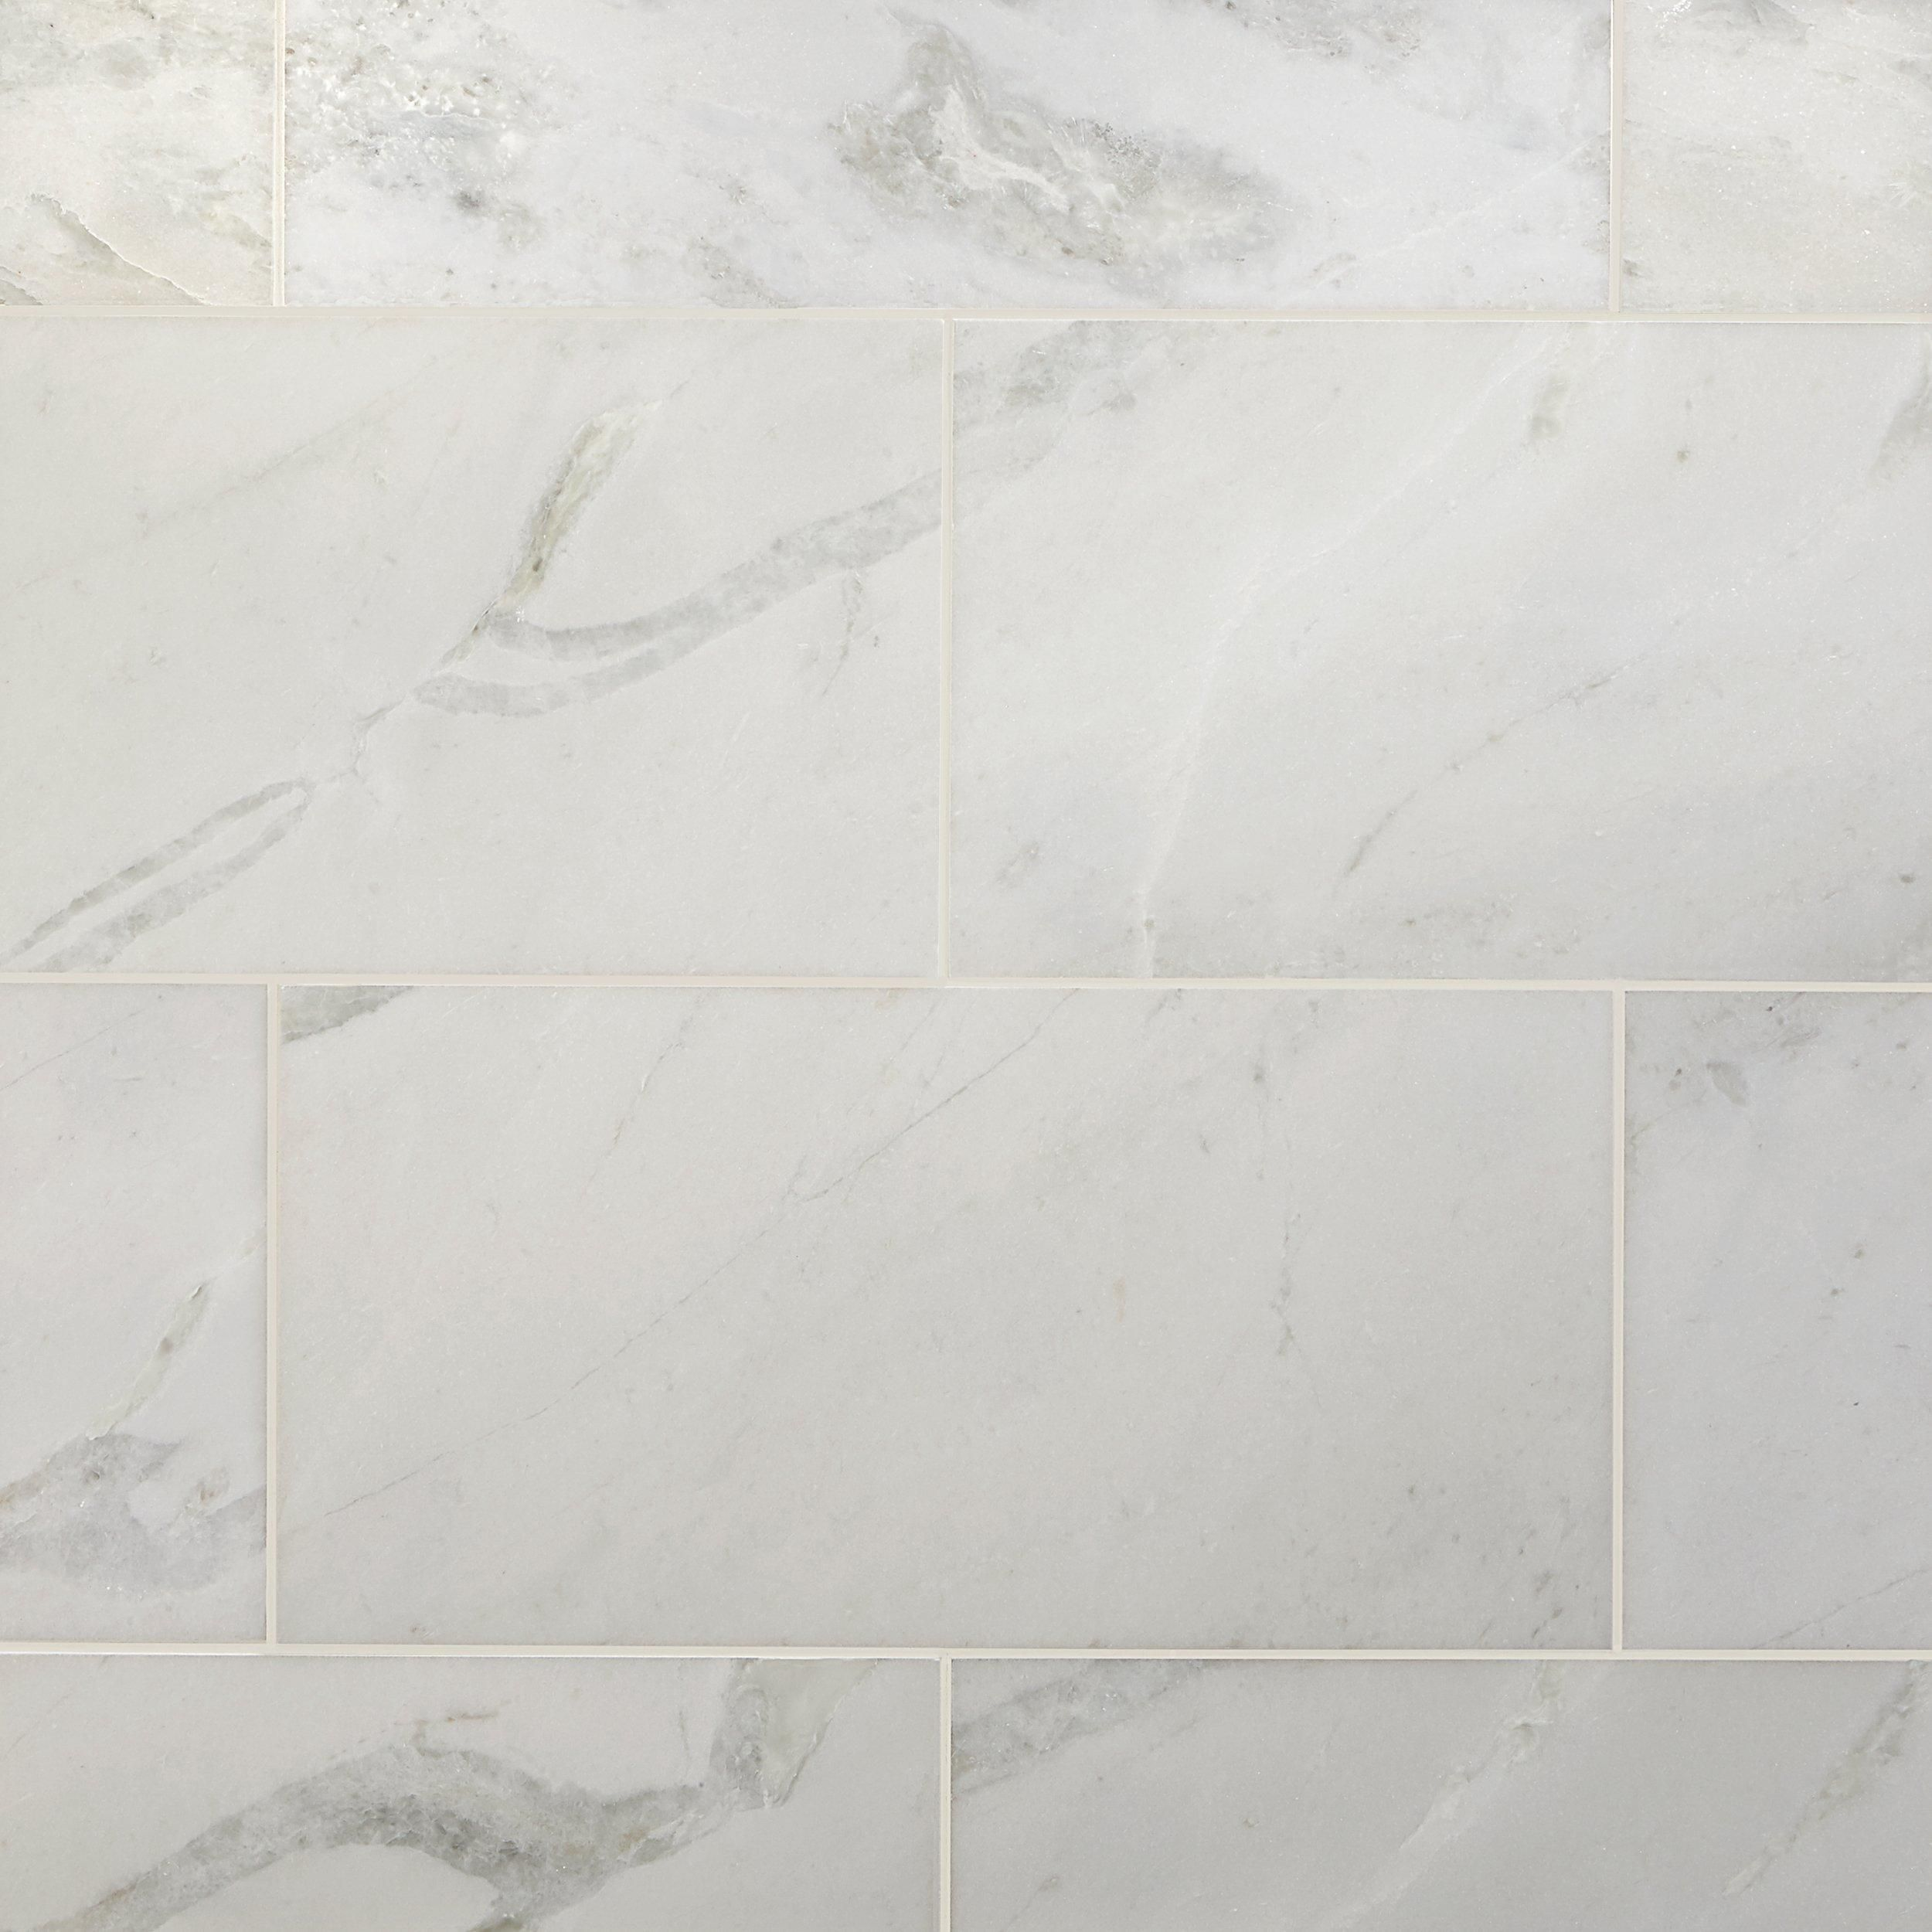 Sahara Carrara Polished Marble Tile Polished Marble Tiles Marble Tile Tiles